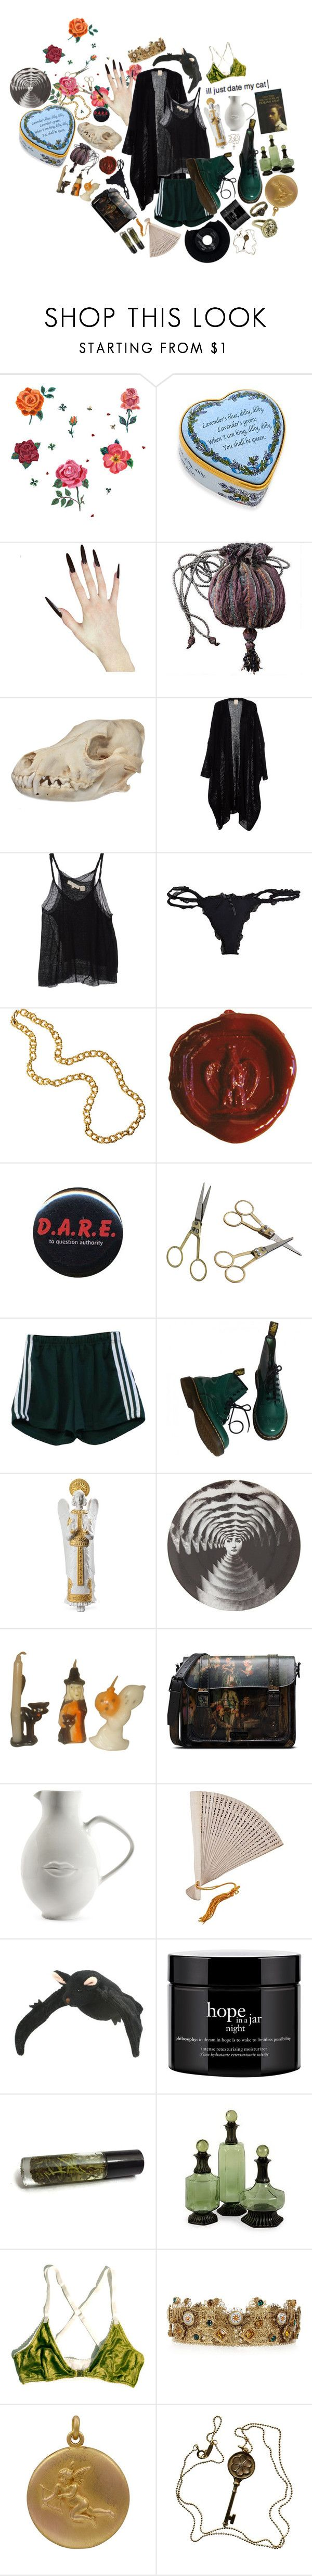 """""""Coward for You"""" by anna-pensky ❤ liked on Polyvore featuring DOMESTIC, Halcyon Days, Inhabit, Wet Seal, Ultimate, Dot & Bo, Dr. Martens, Lladró, Fornasetti and Jonathan Adler"""